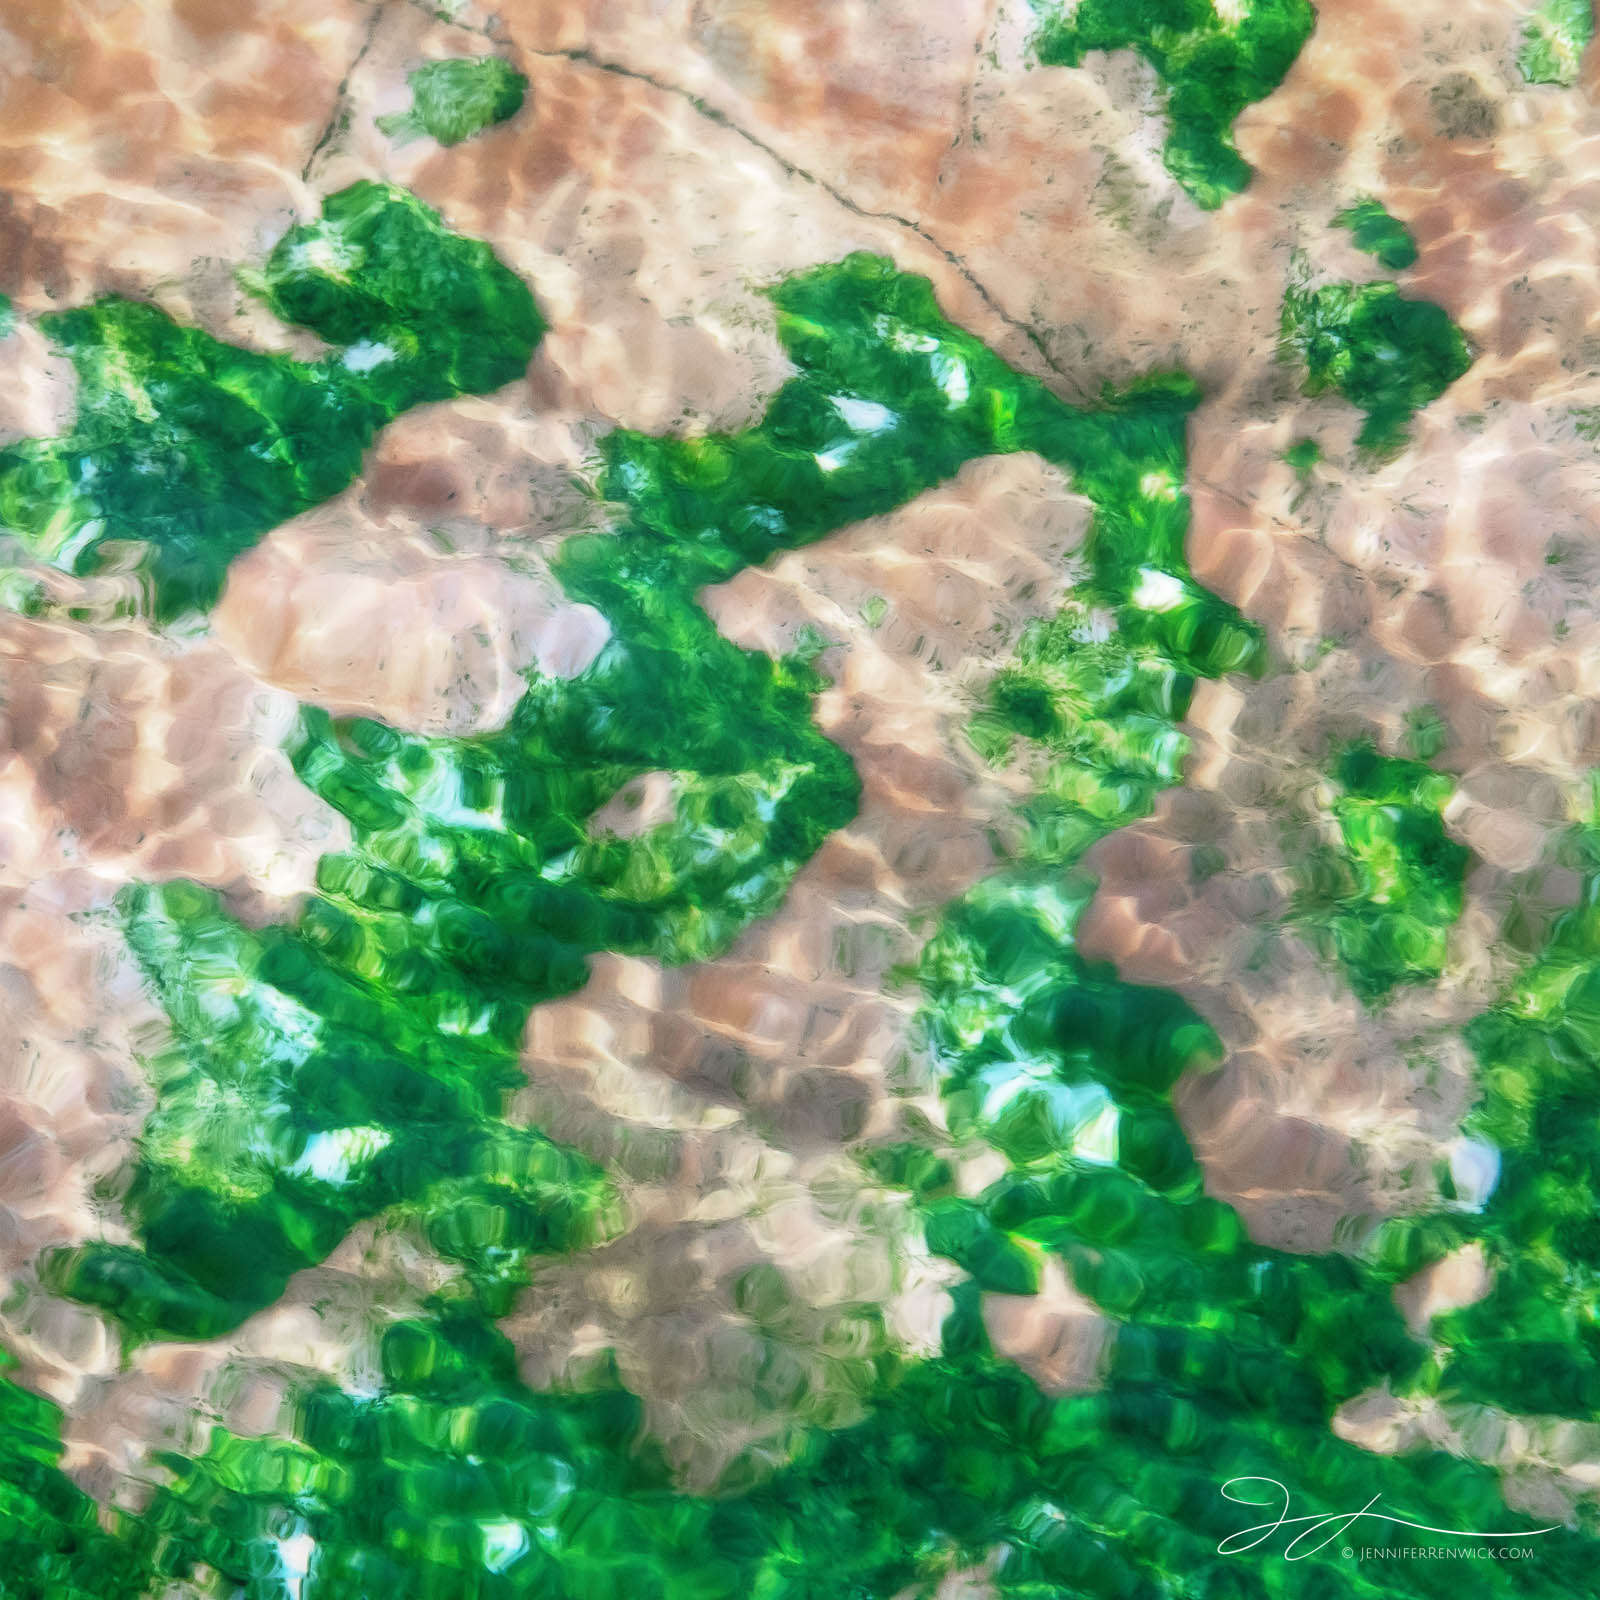 Green bacteria and moving water create a painterly scene.